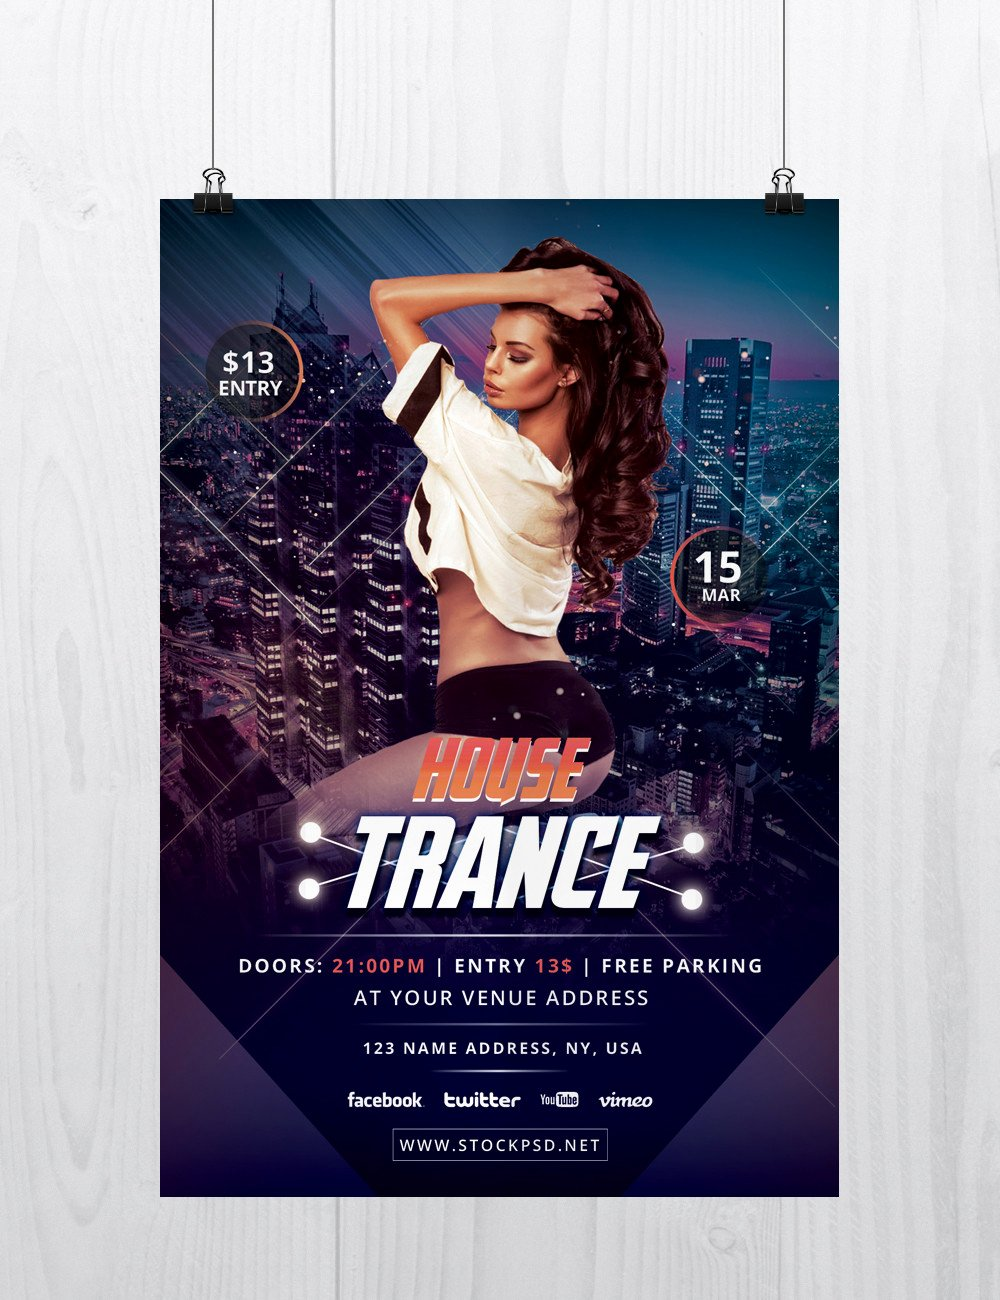 Free Flyer Template Downloads Unique House Trance Download Free Psd Flyer Template Free Psd